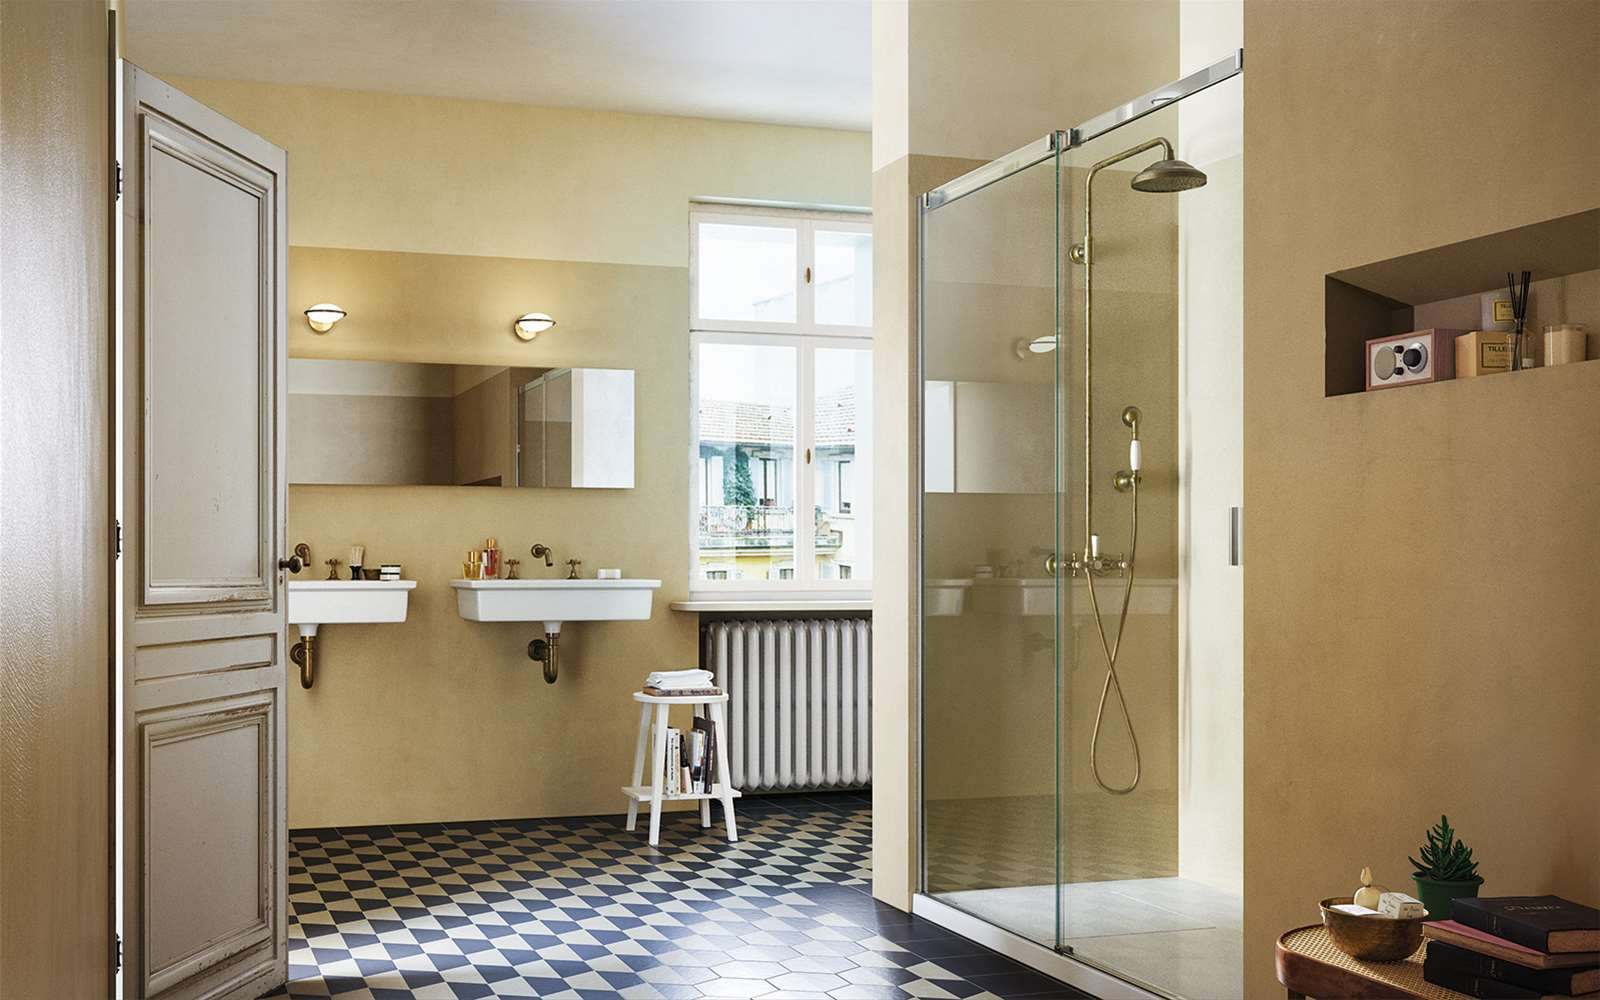 Serie 8000 | The sliding shower enclosure, synthesis of experience